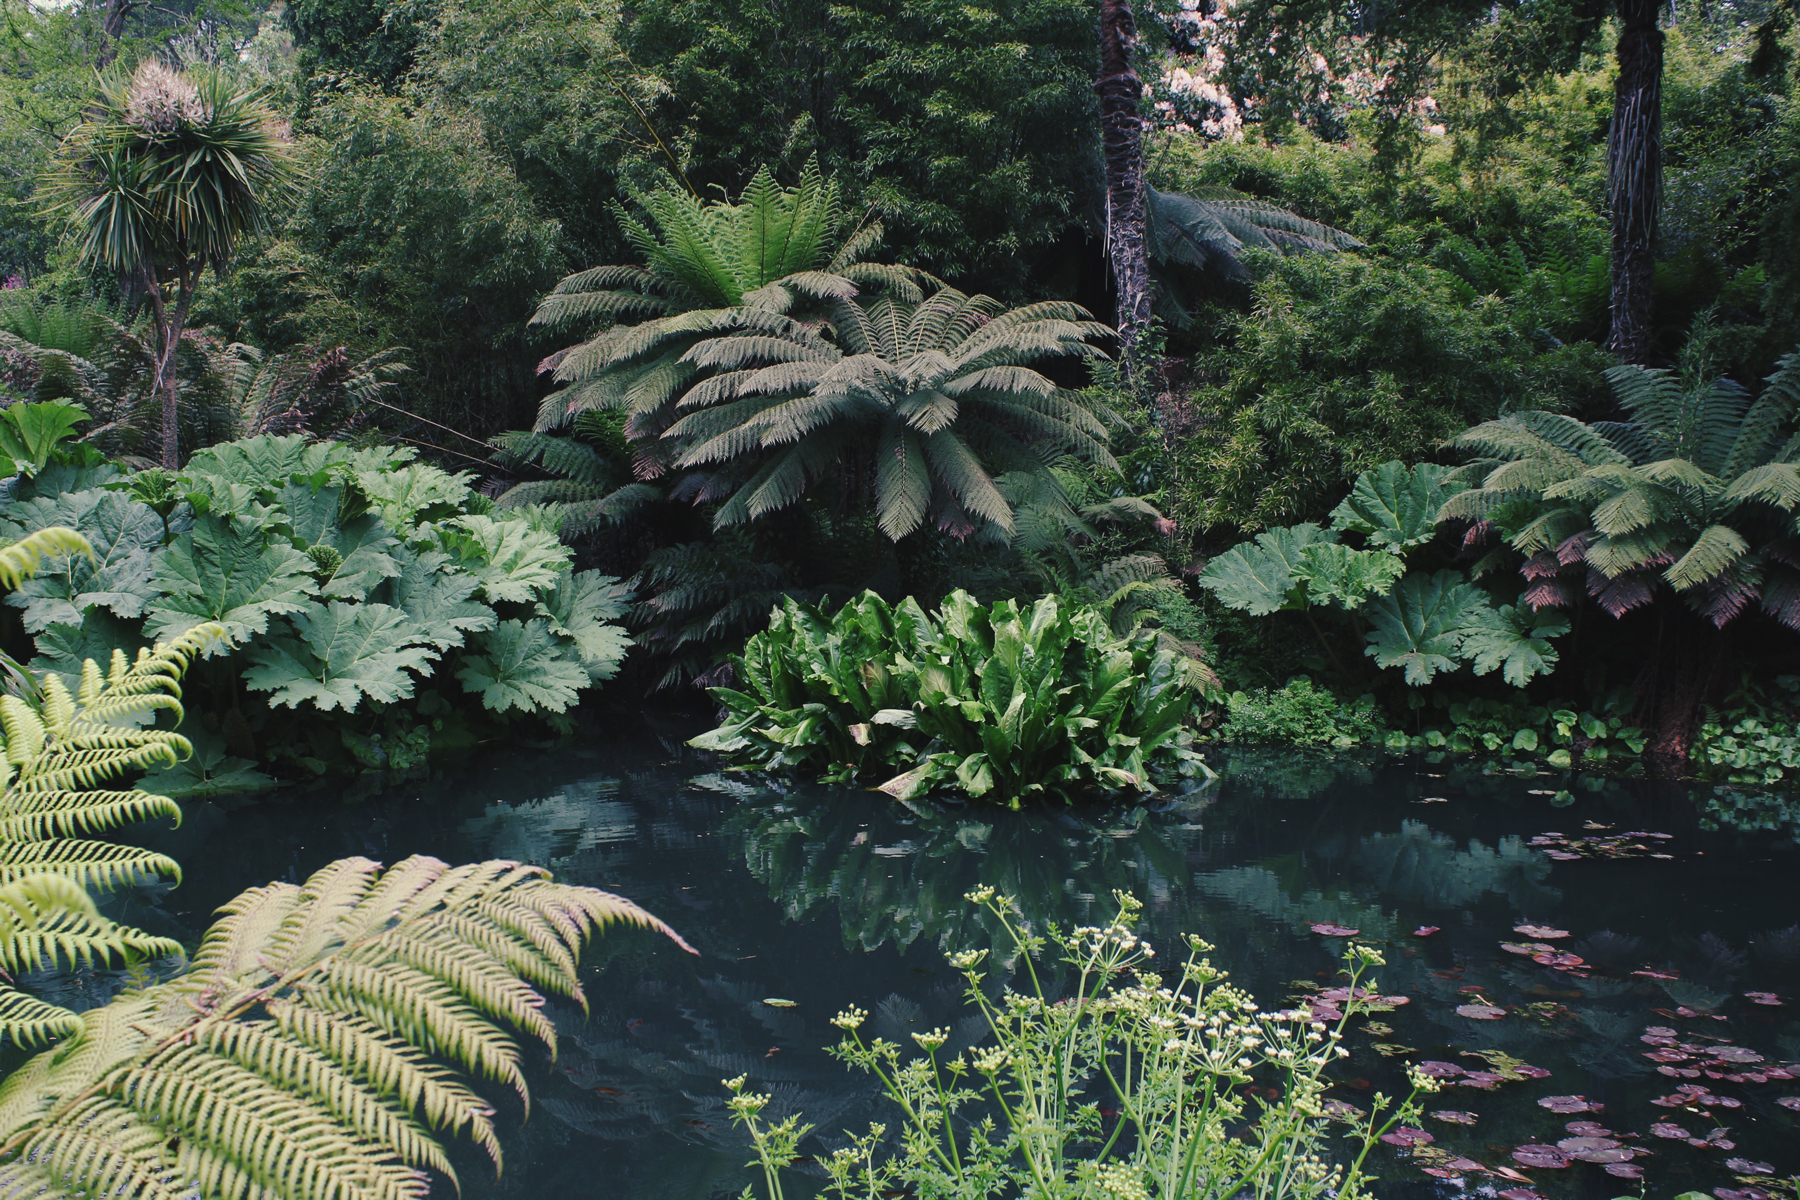 Fern Pond in the Lost Gardens of Heligan